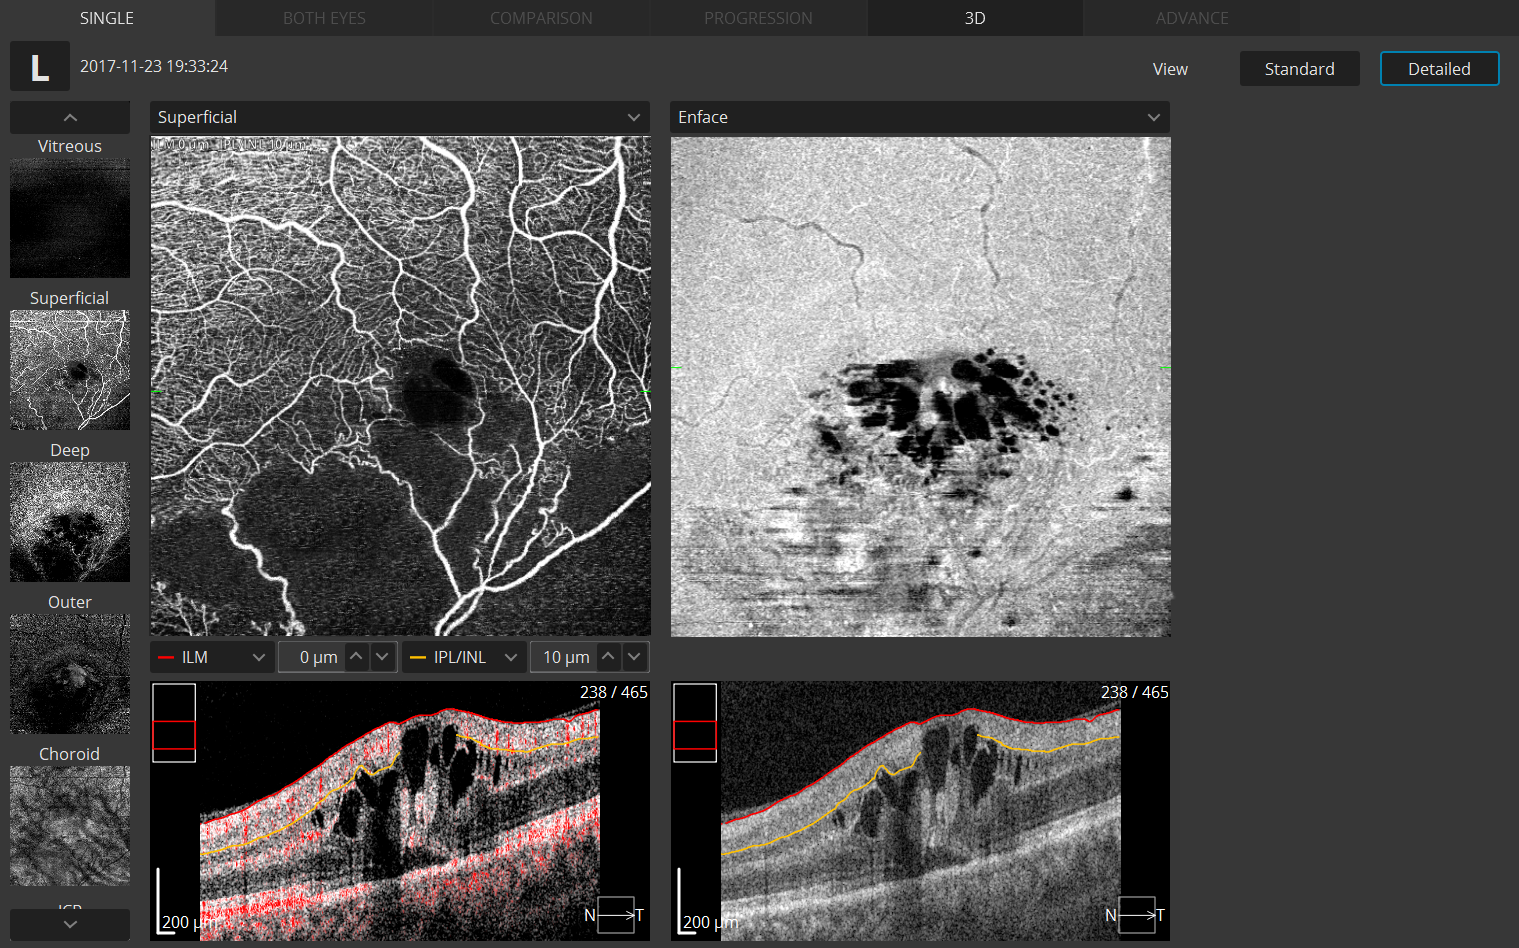 OCT Angiography Detailed Single View